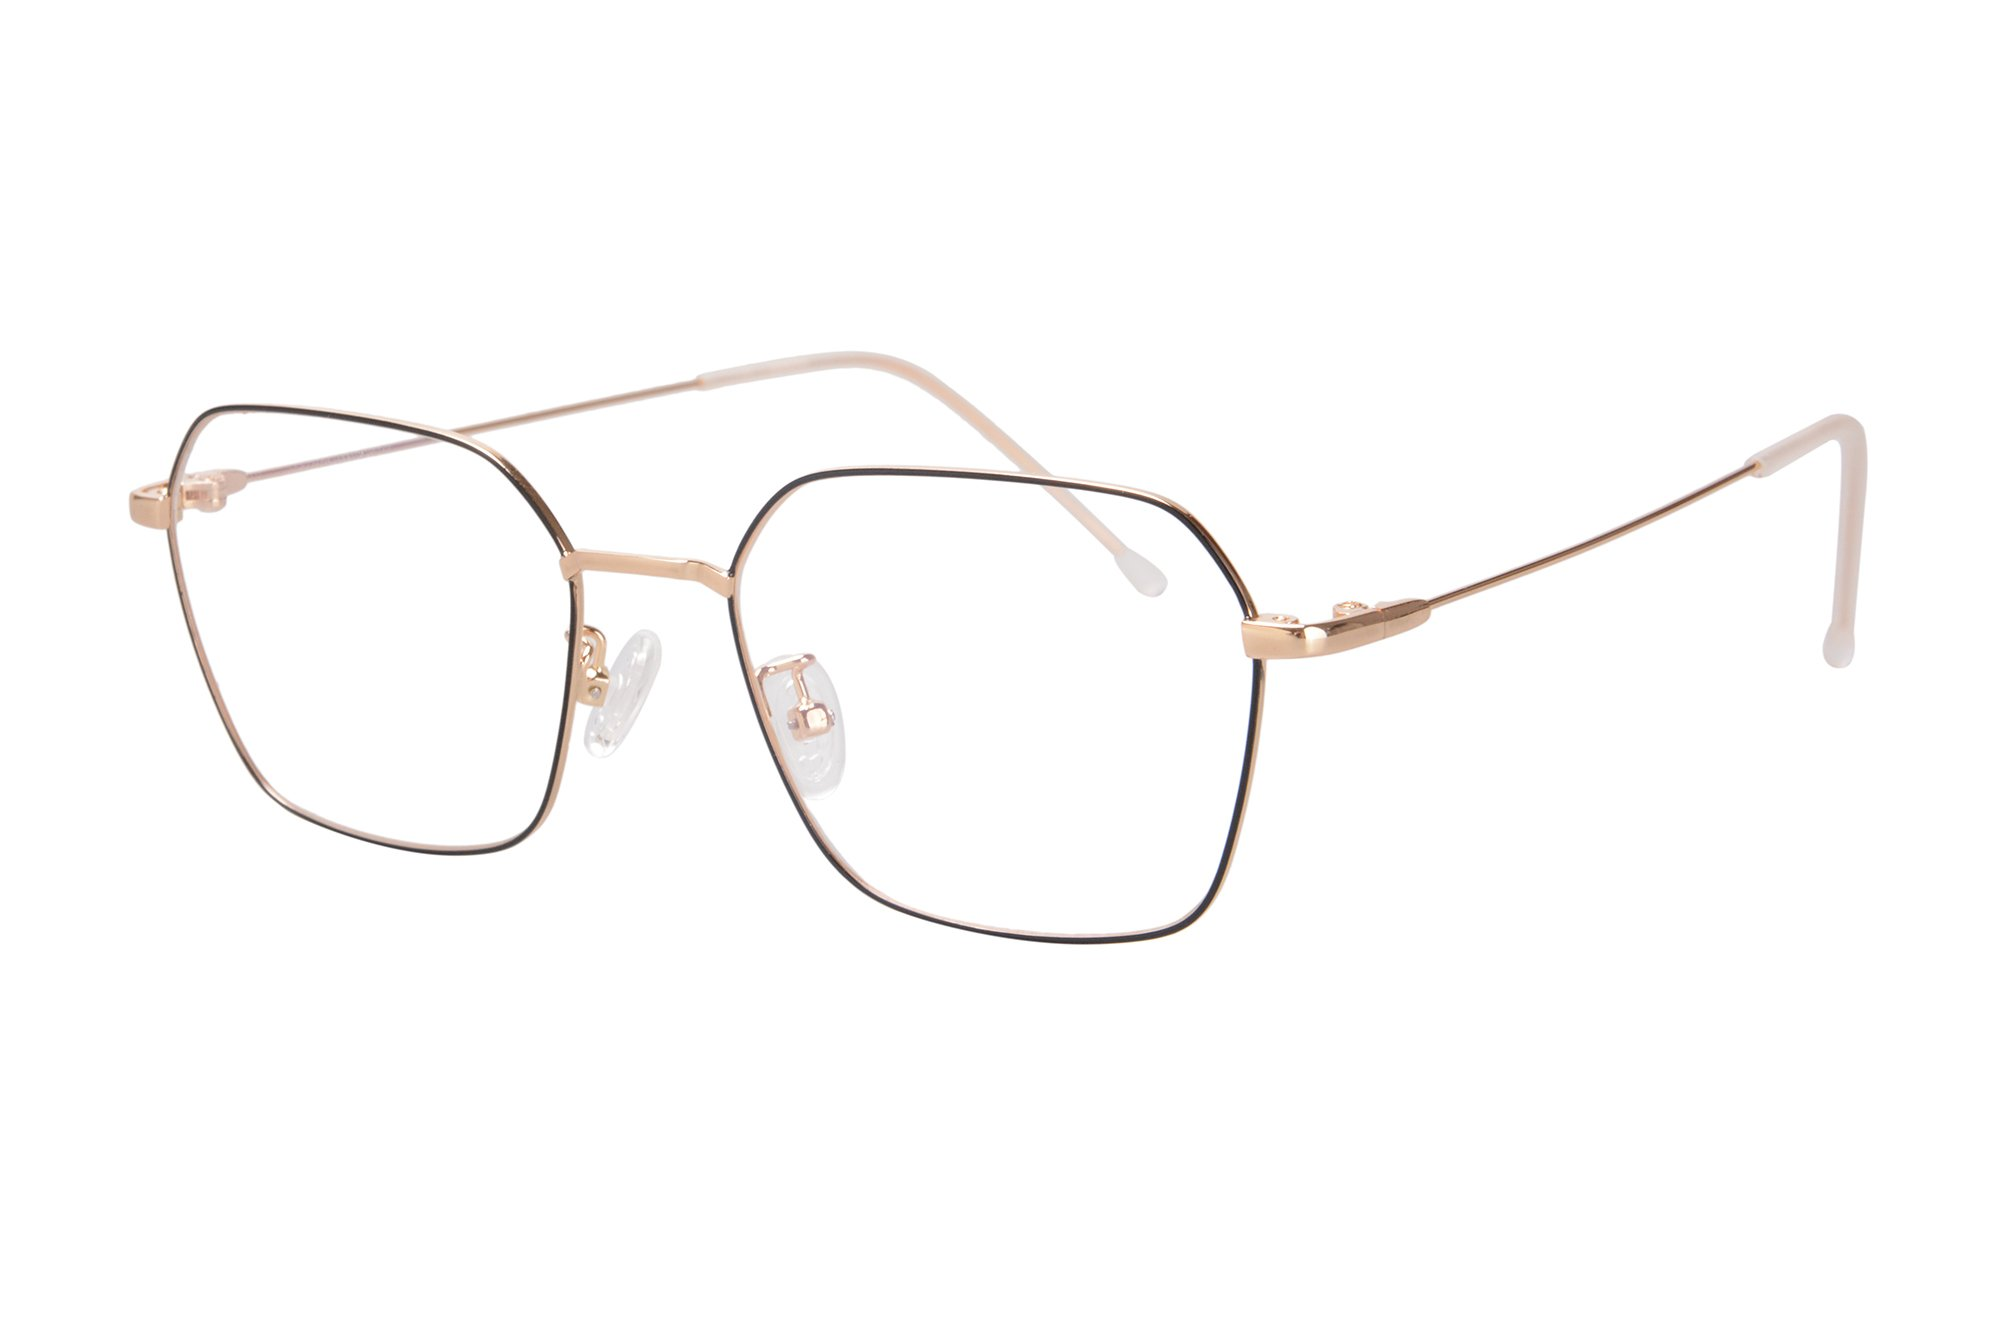 SHINU Lightweight Metal Frame Progressive Multifocus Blue Light Blocking Reading Glasses-SH064(gold and black, anti-blue up 0 down 2.50)